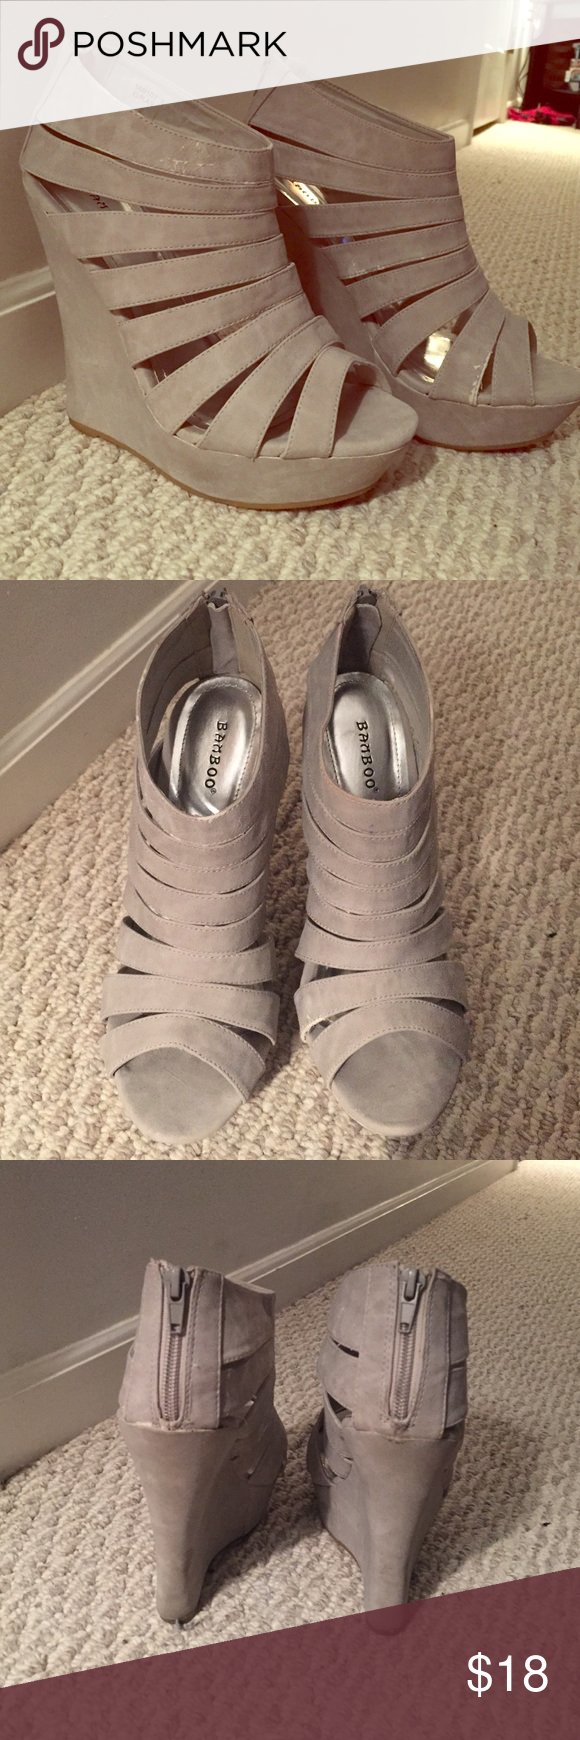 Light grey / taupe high wedge platform sandals Worn a handful of times still in good condition and coming from a smoke free home! Super cute tall wedges, zip up the back of the heel. A couple scuff marks on the inside of the shoes, nothing major. Bamboo Shoes Wedges